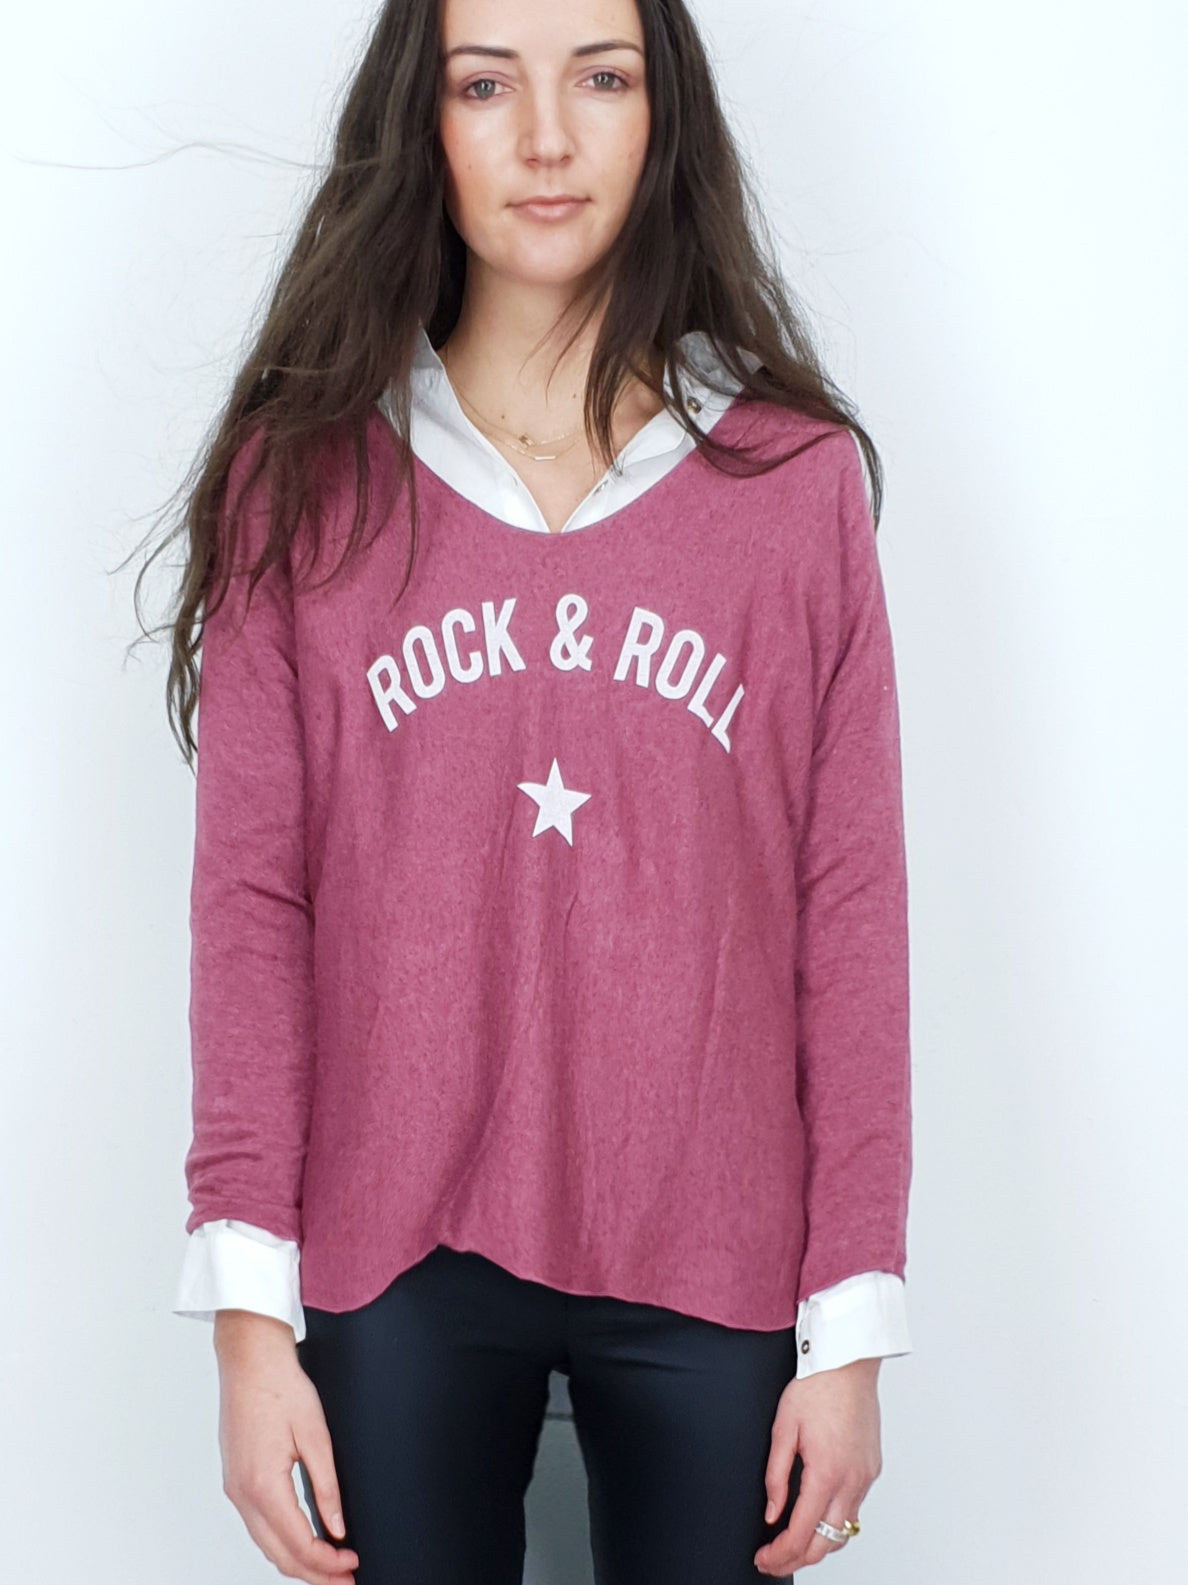 Rock & Roll | Knit T-shirt | Raspberry